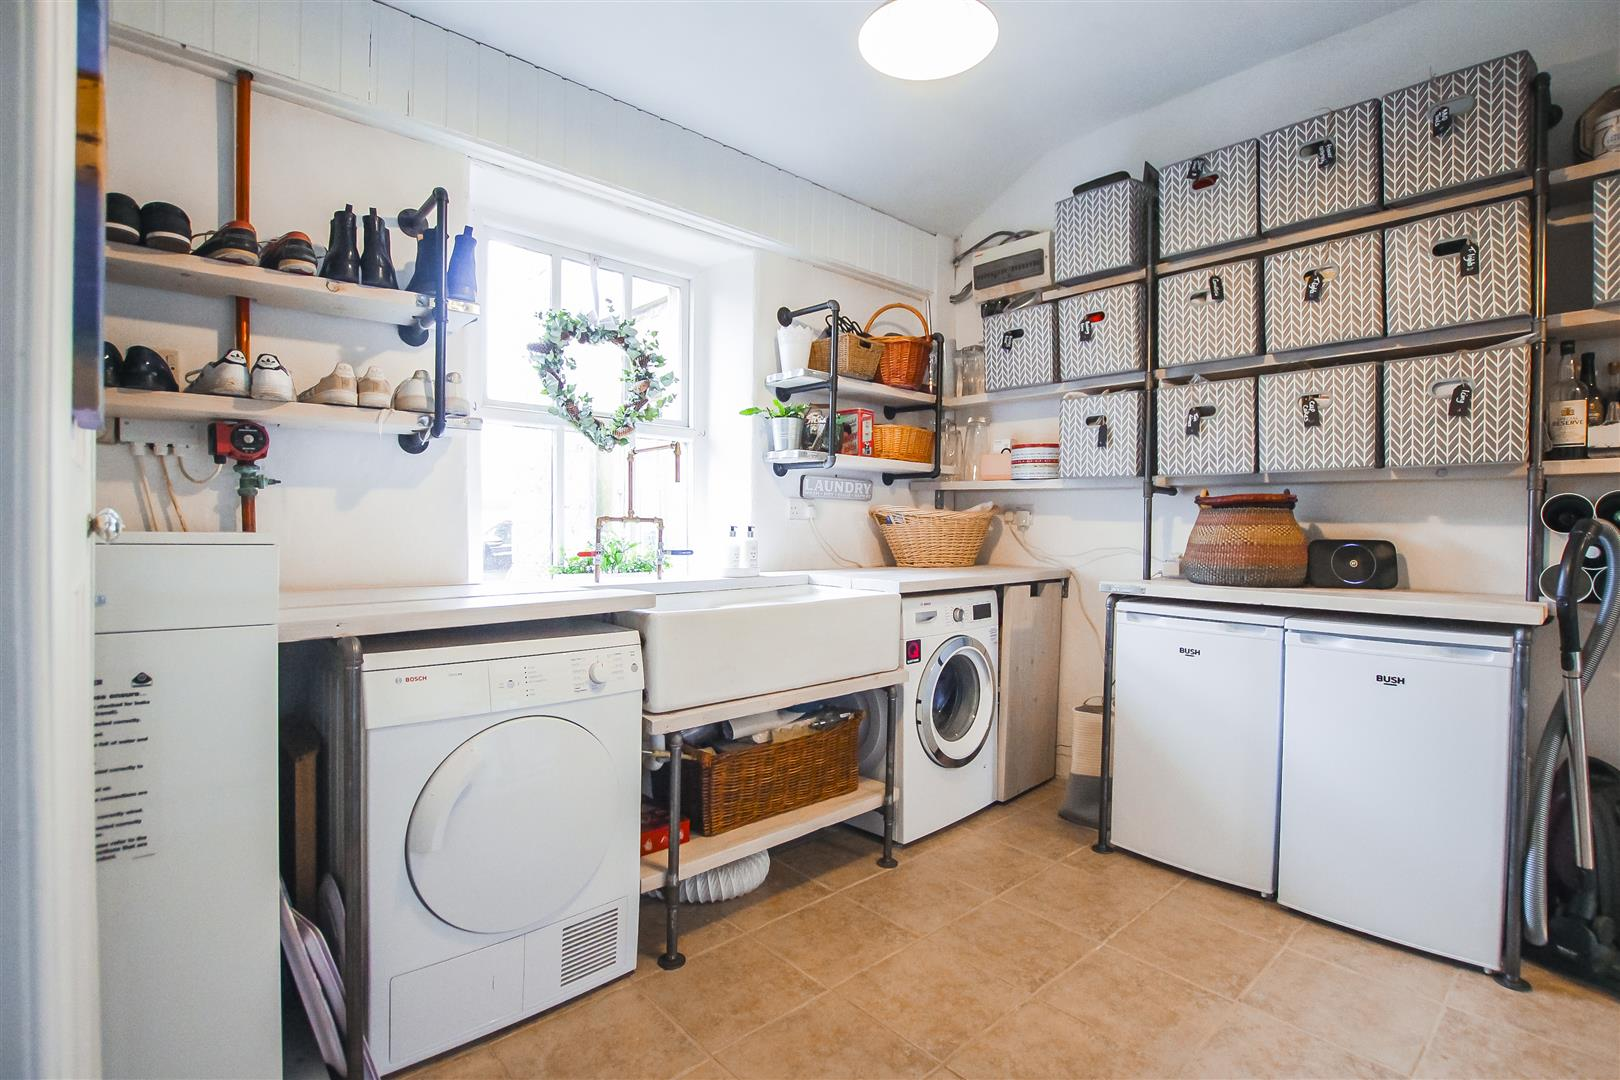 4 Bedroom House For Sale - Boot Room